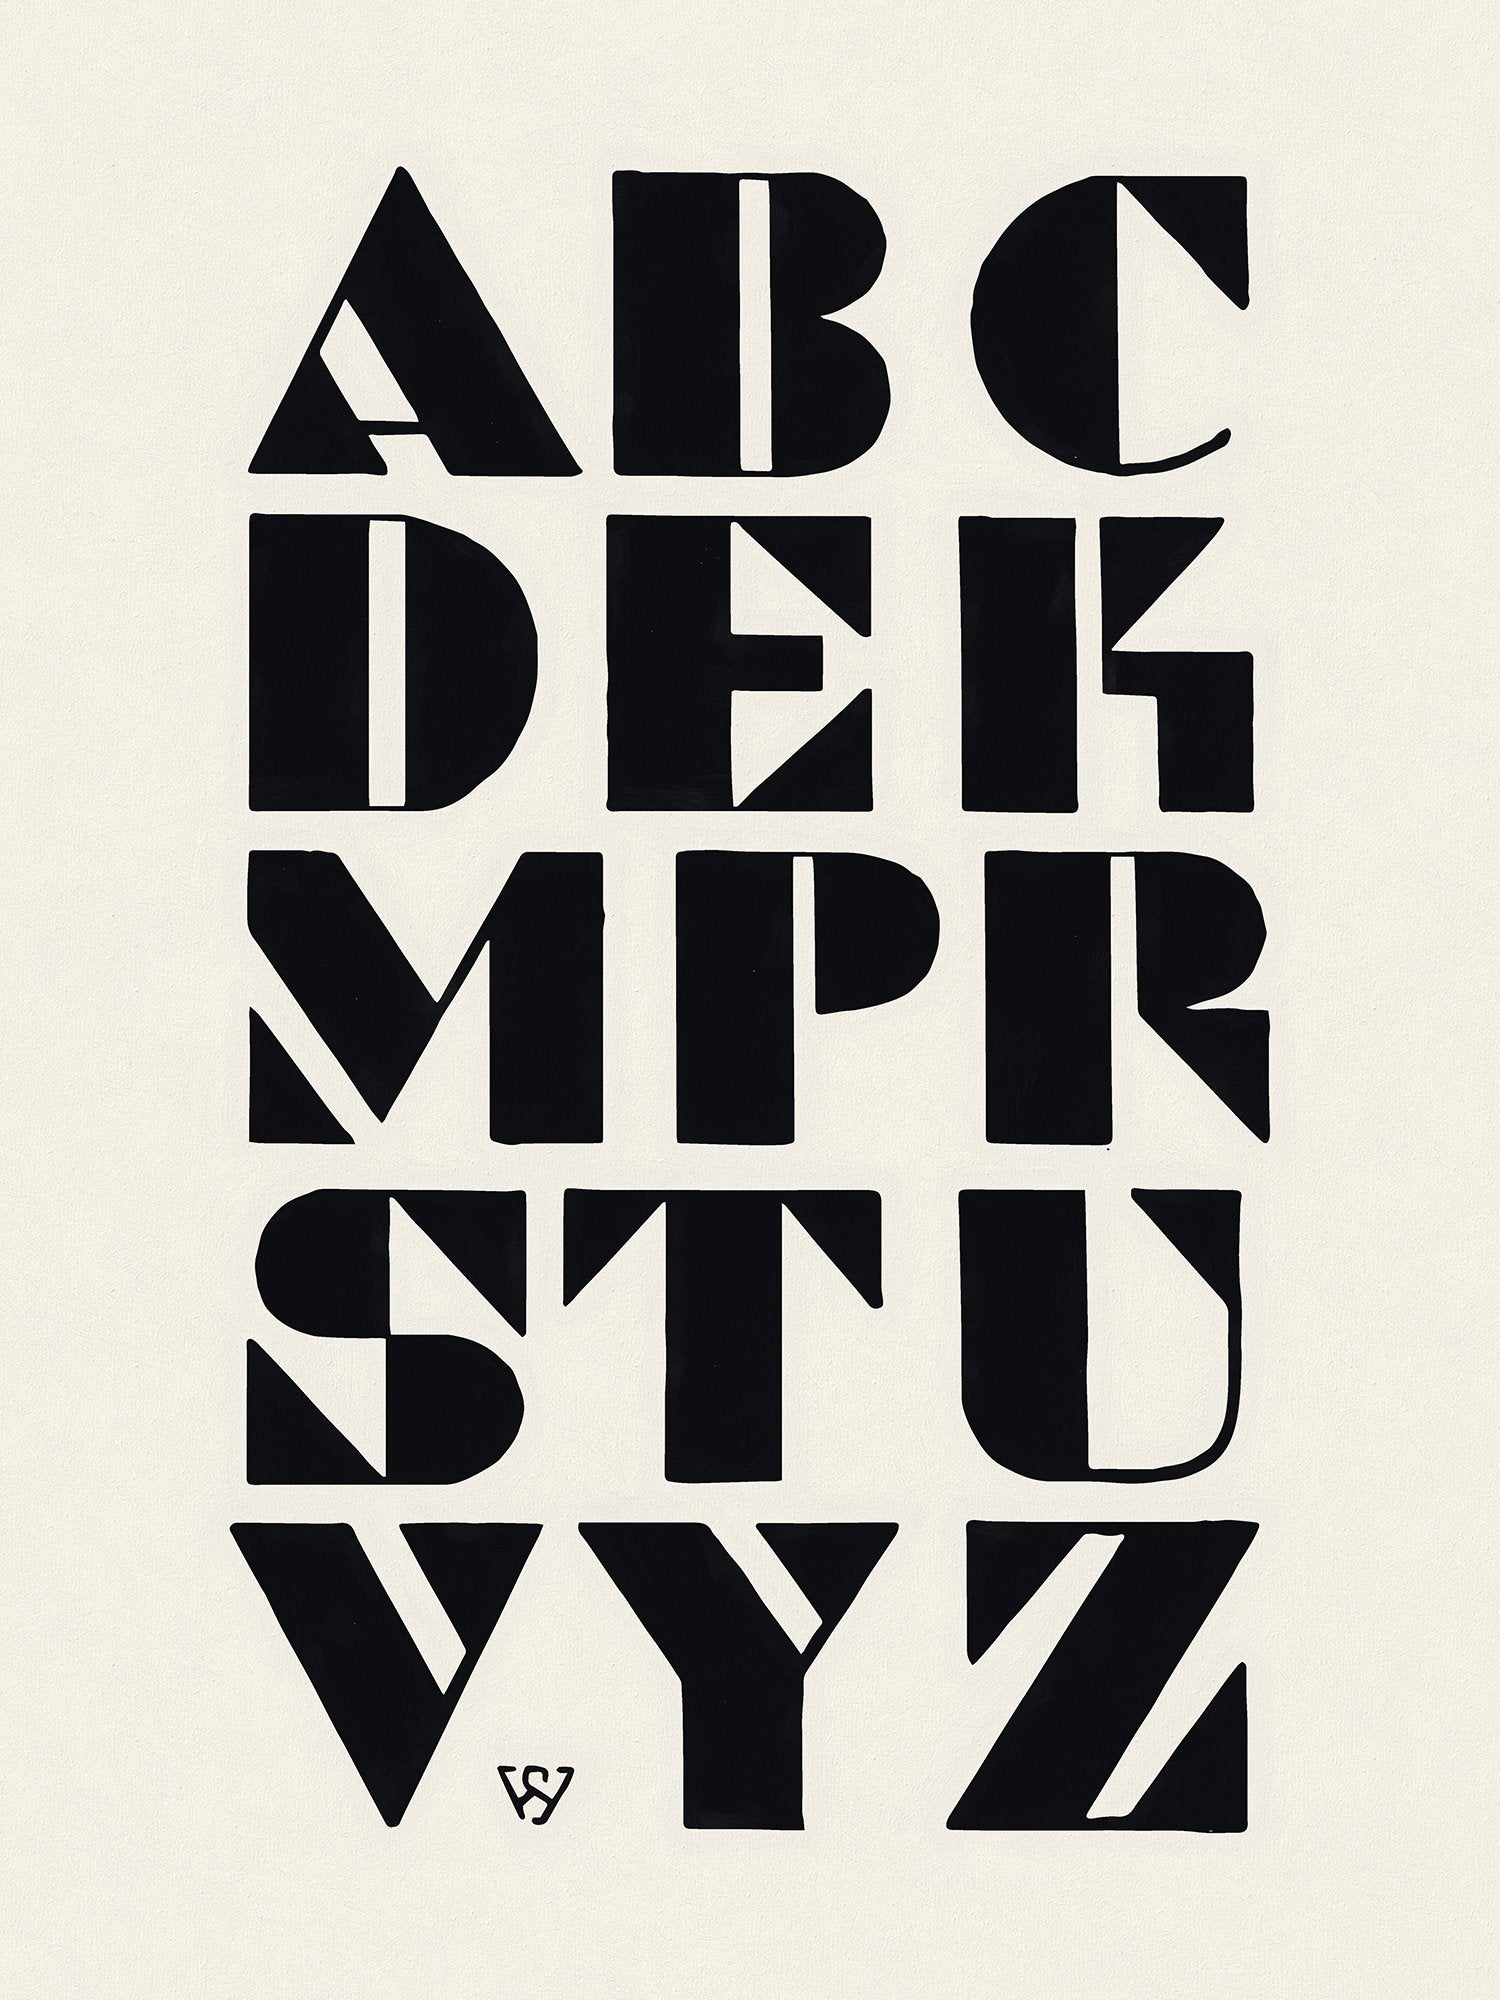 Studio Handbook No. 250, New Alphabets by Welo, Reworked, Series 2